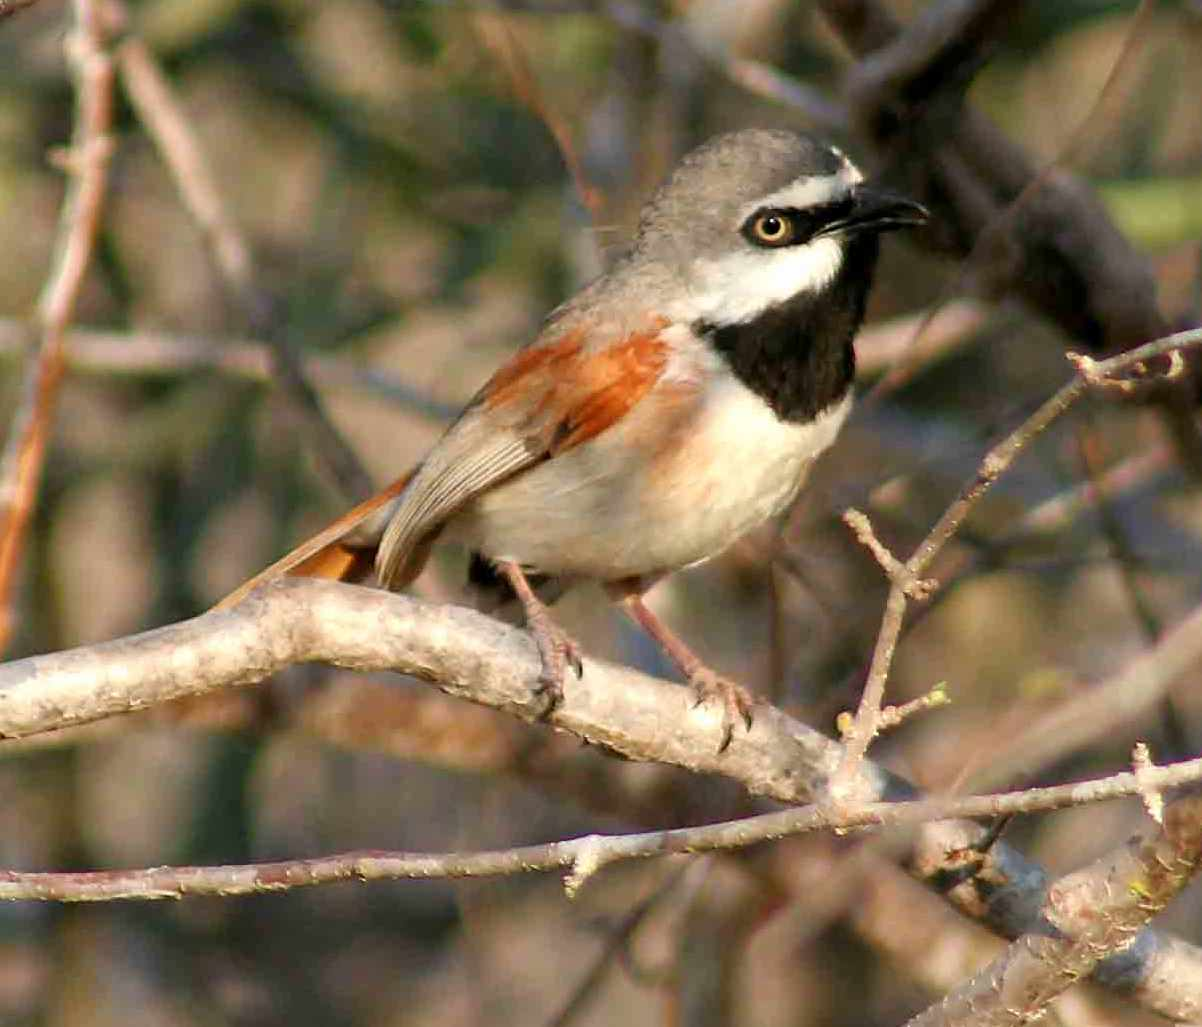 The red-shouldered vanga